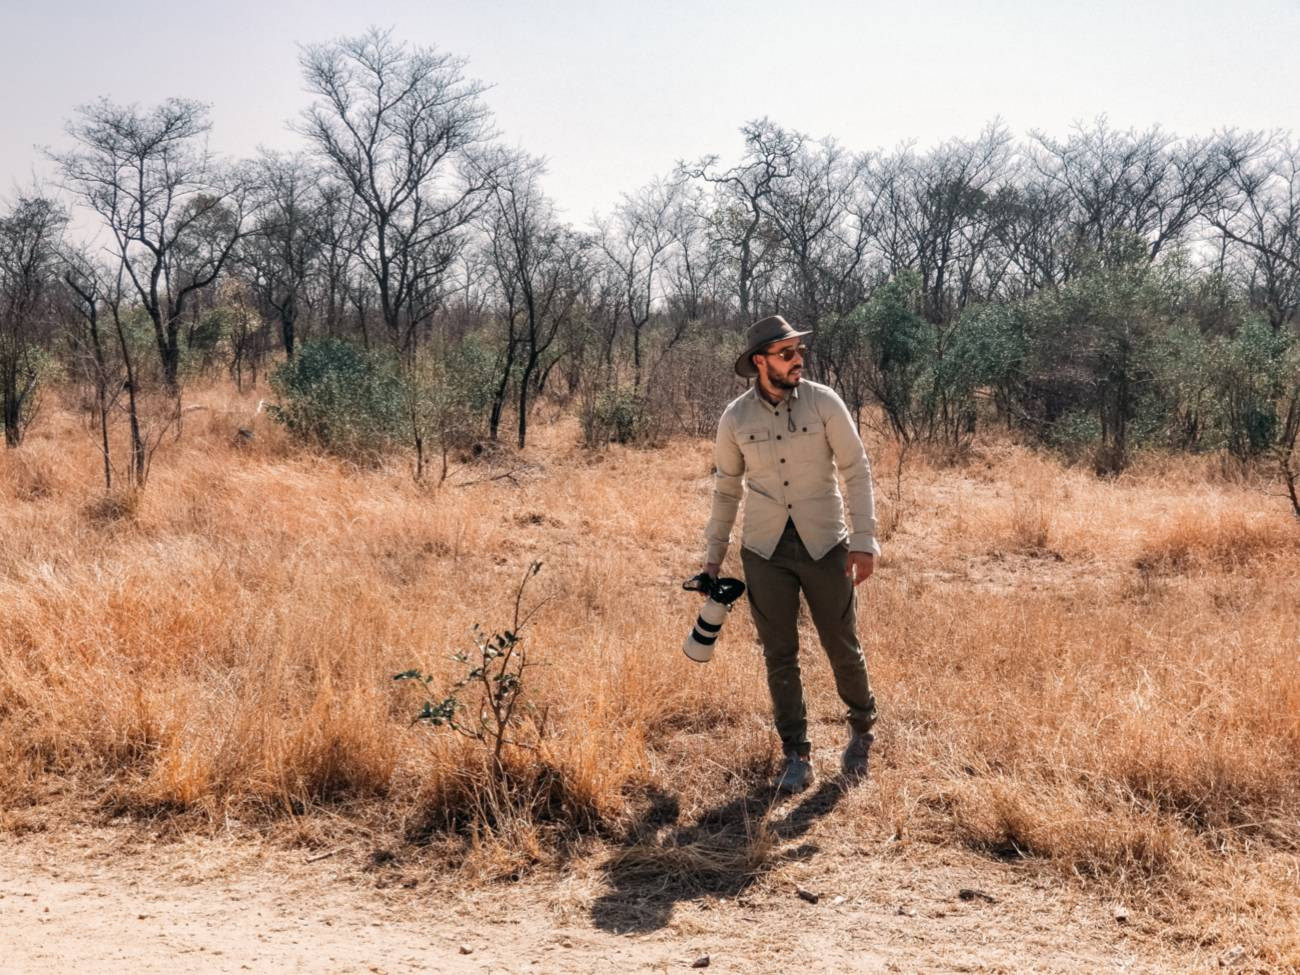 Shooting Wildlife Photography with Any Camera